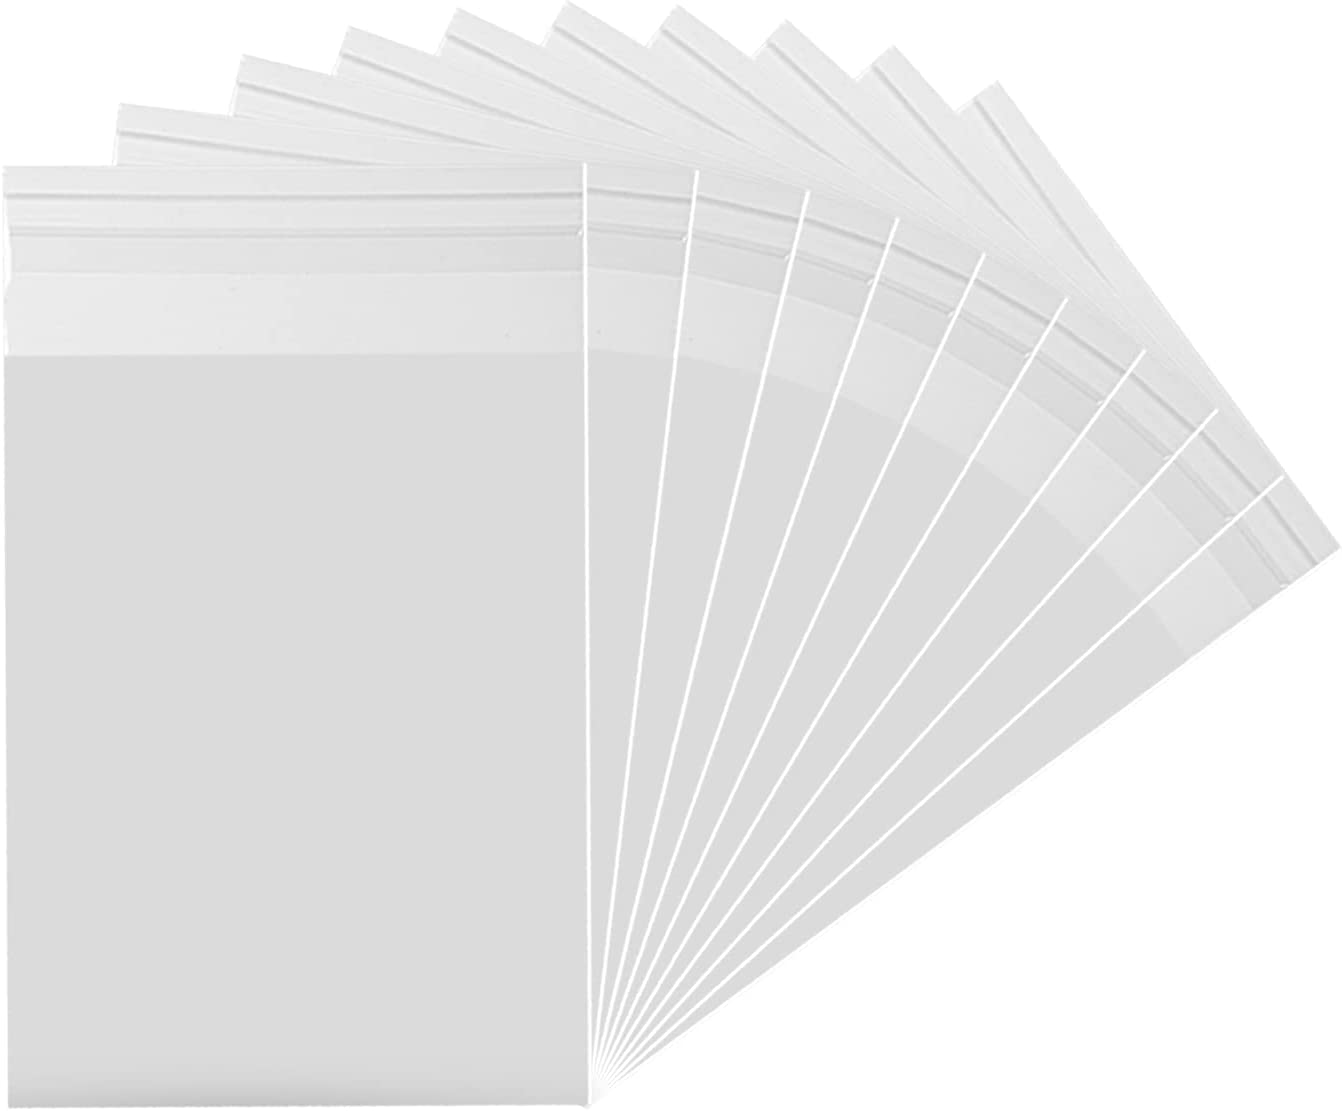 Crystal Clear Resealable Recloseable Cellophane/SelfSeal Bags for Bakery, Snacks, Candle, Soap, Cookie, Jewelry, Cards.(100 Pack) (5''X7'')…